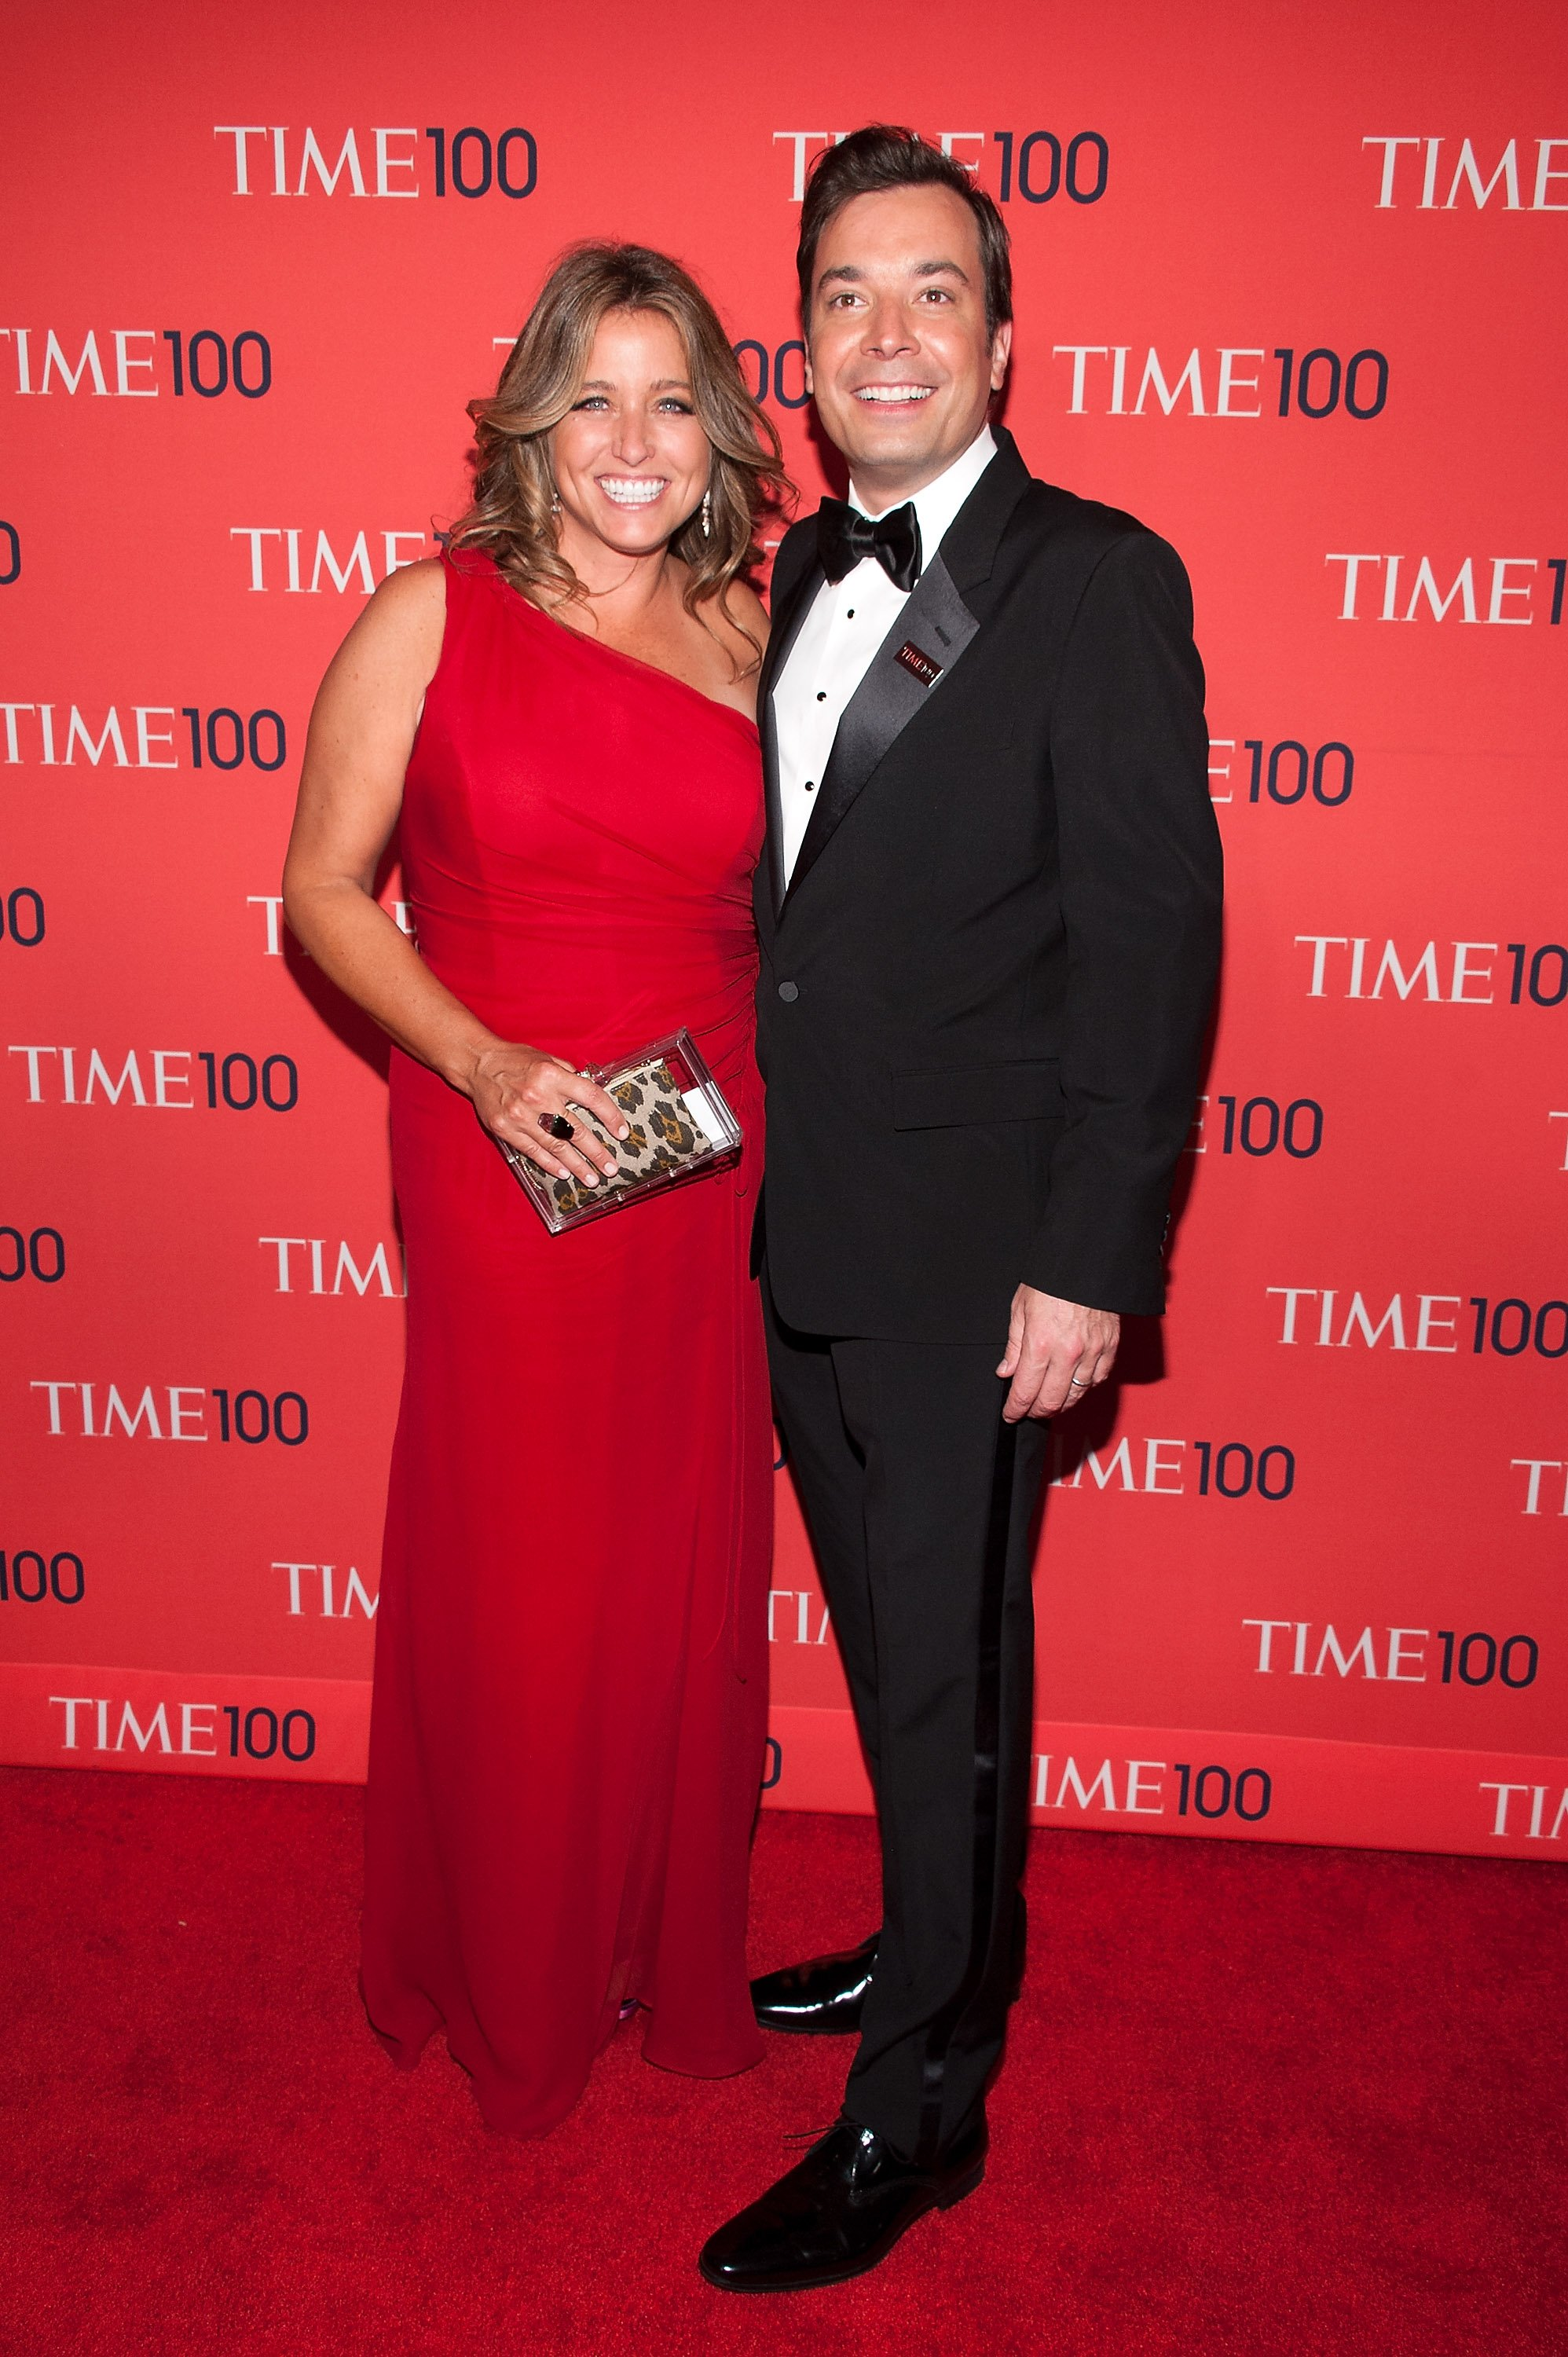 Jimmy Fallon and wife Nancy Juvonen attend the 2013 Time 100 Gala at Frederick P. Rose Hall, Jazz at Lincoln Center on April 23, 2013 in New York City | Photo: GettyImages